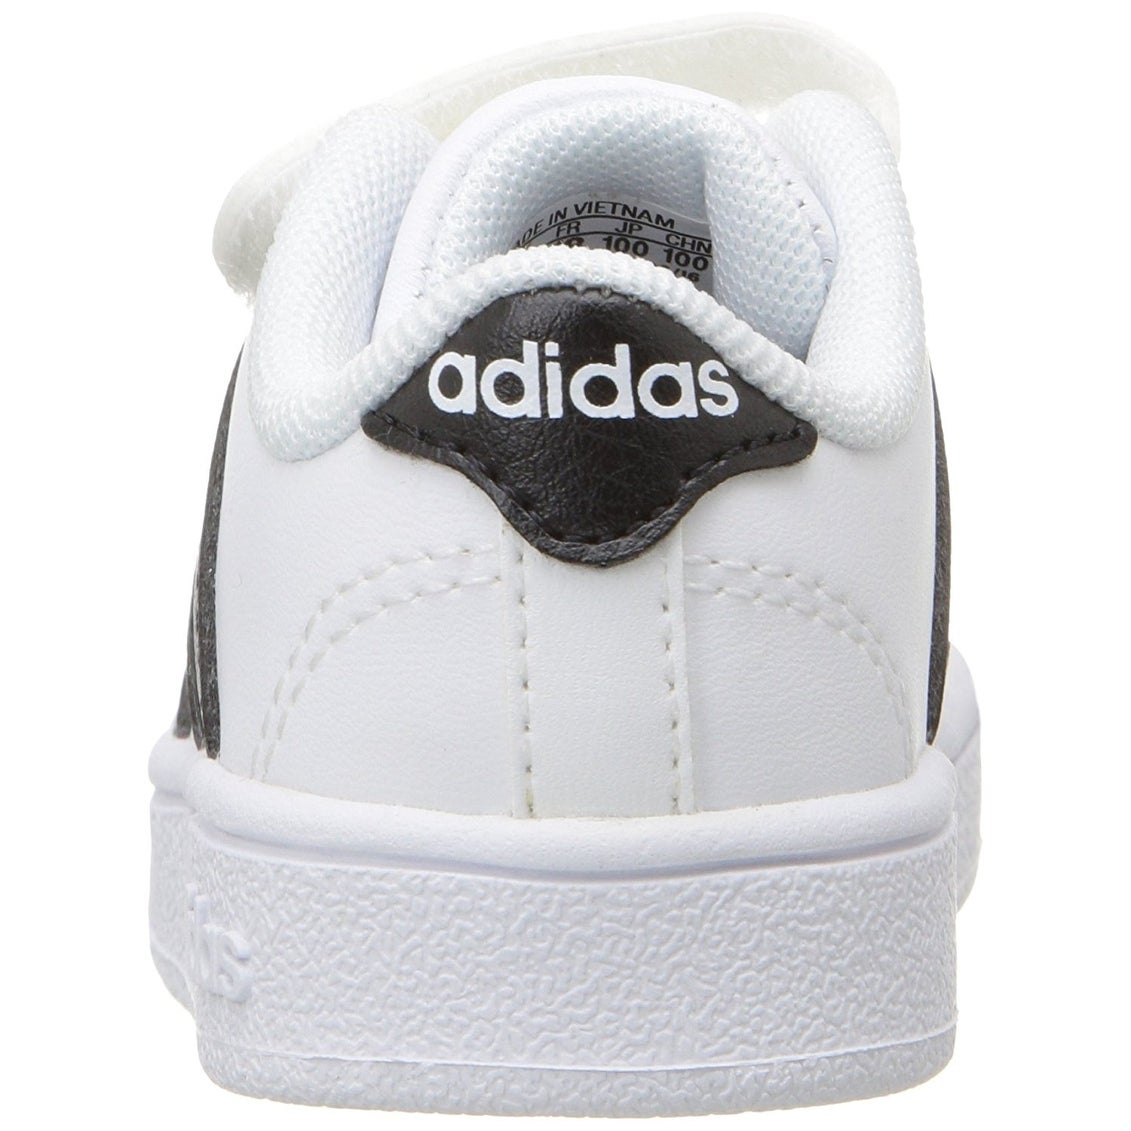 Shop adidas Neo Kids  Baseline CMF Inf Sneaker - Free Shipping On Orders  Over  45 - Overstock - 22254025 c01c9ad41